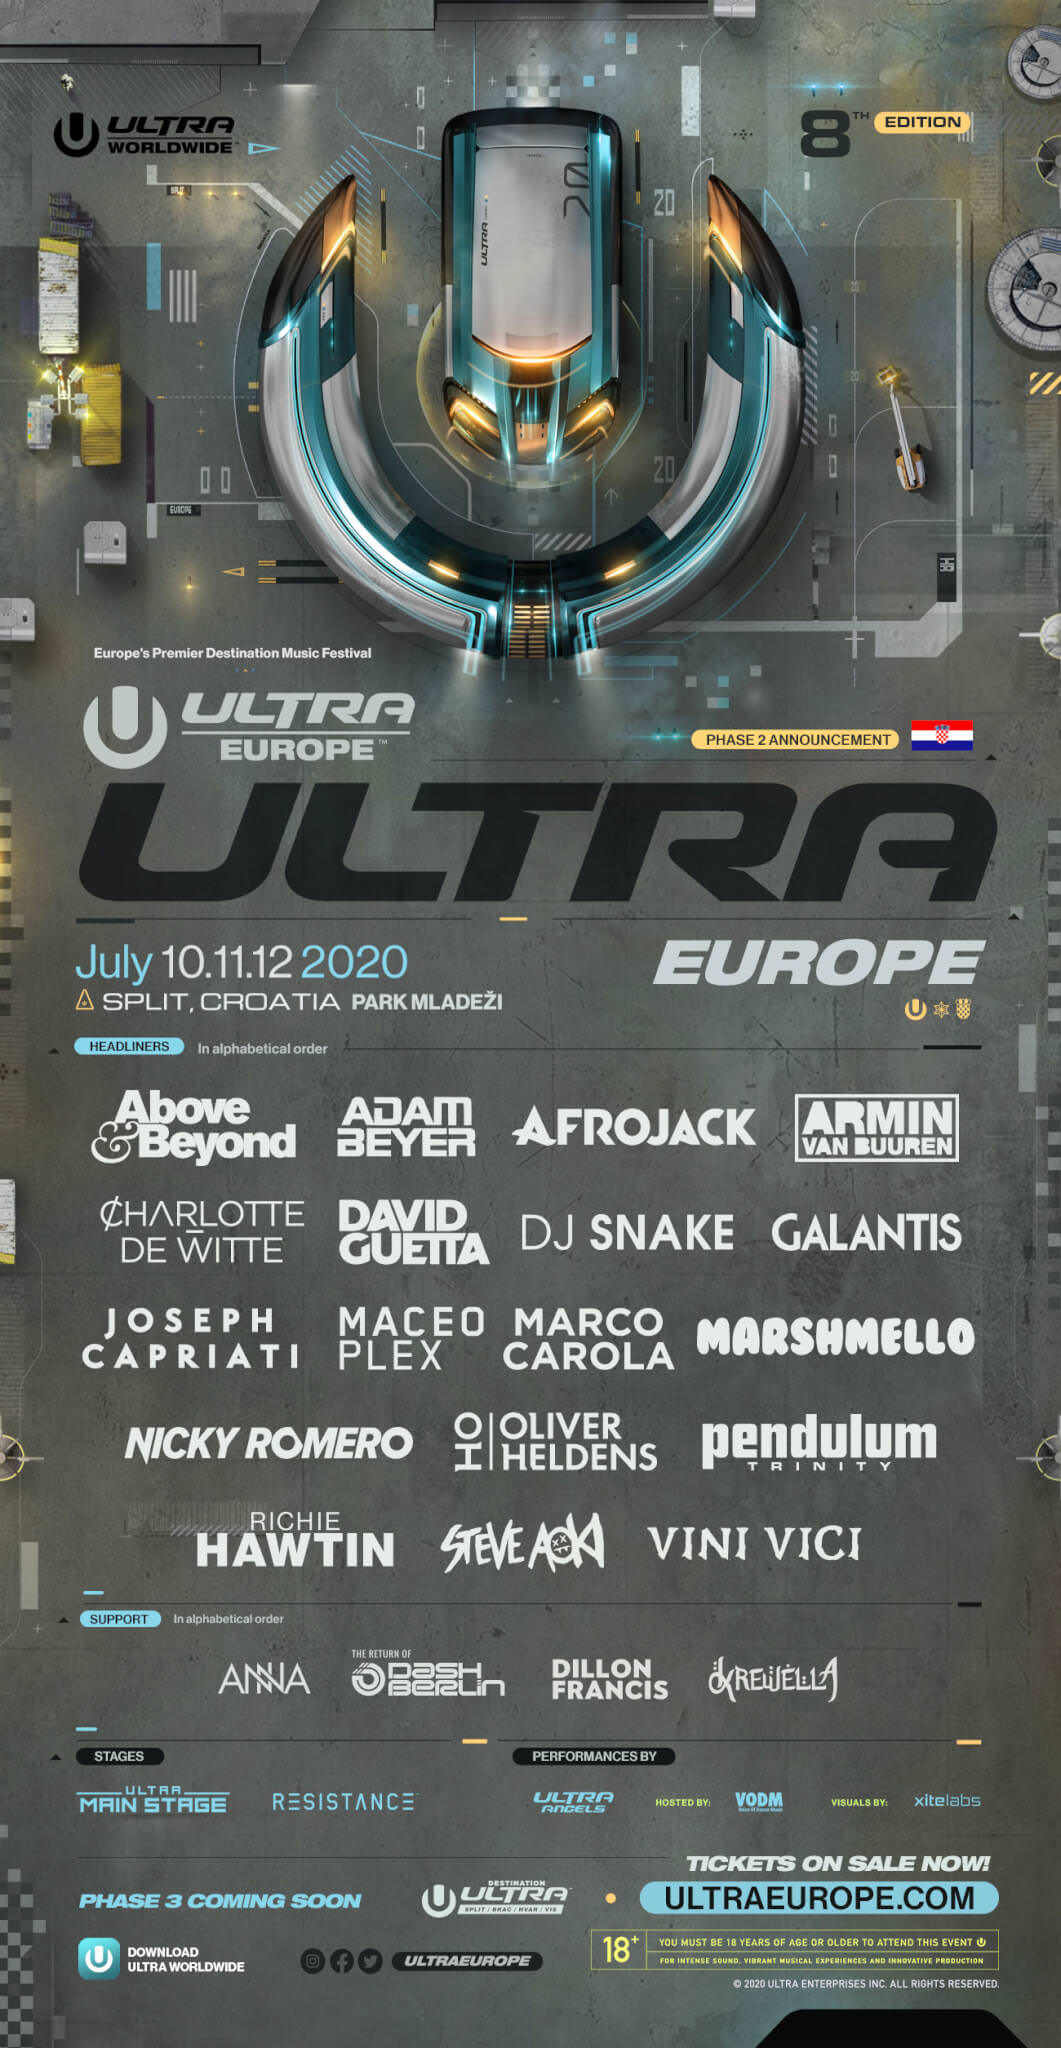 Ultra Europe 2020 Lineup phase 2